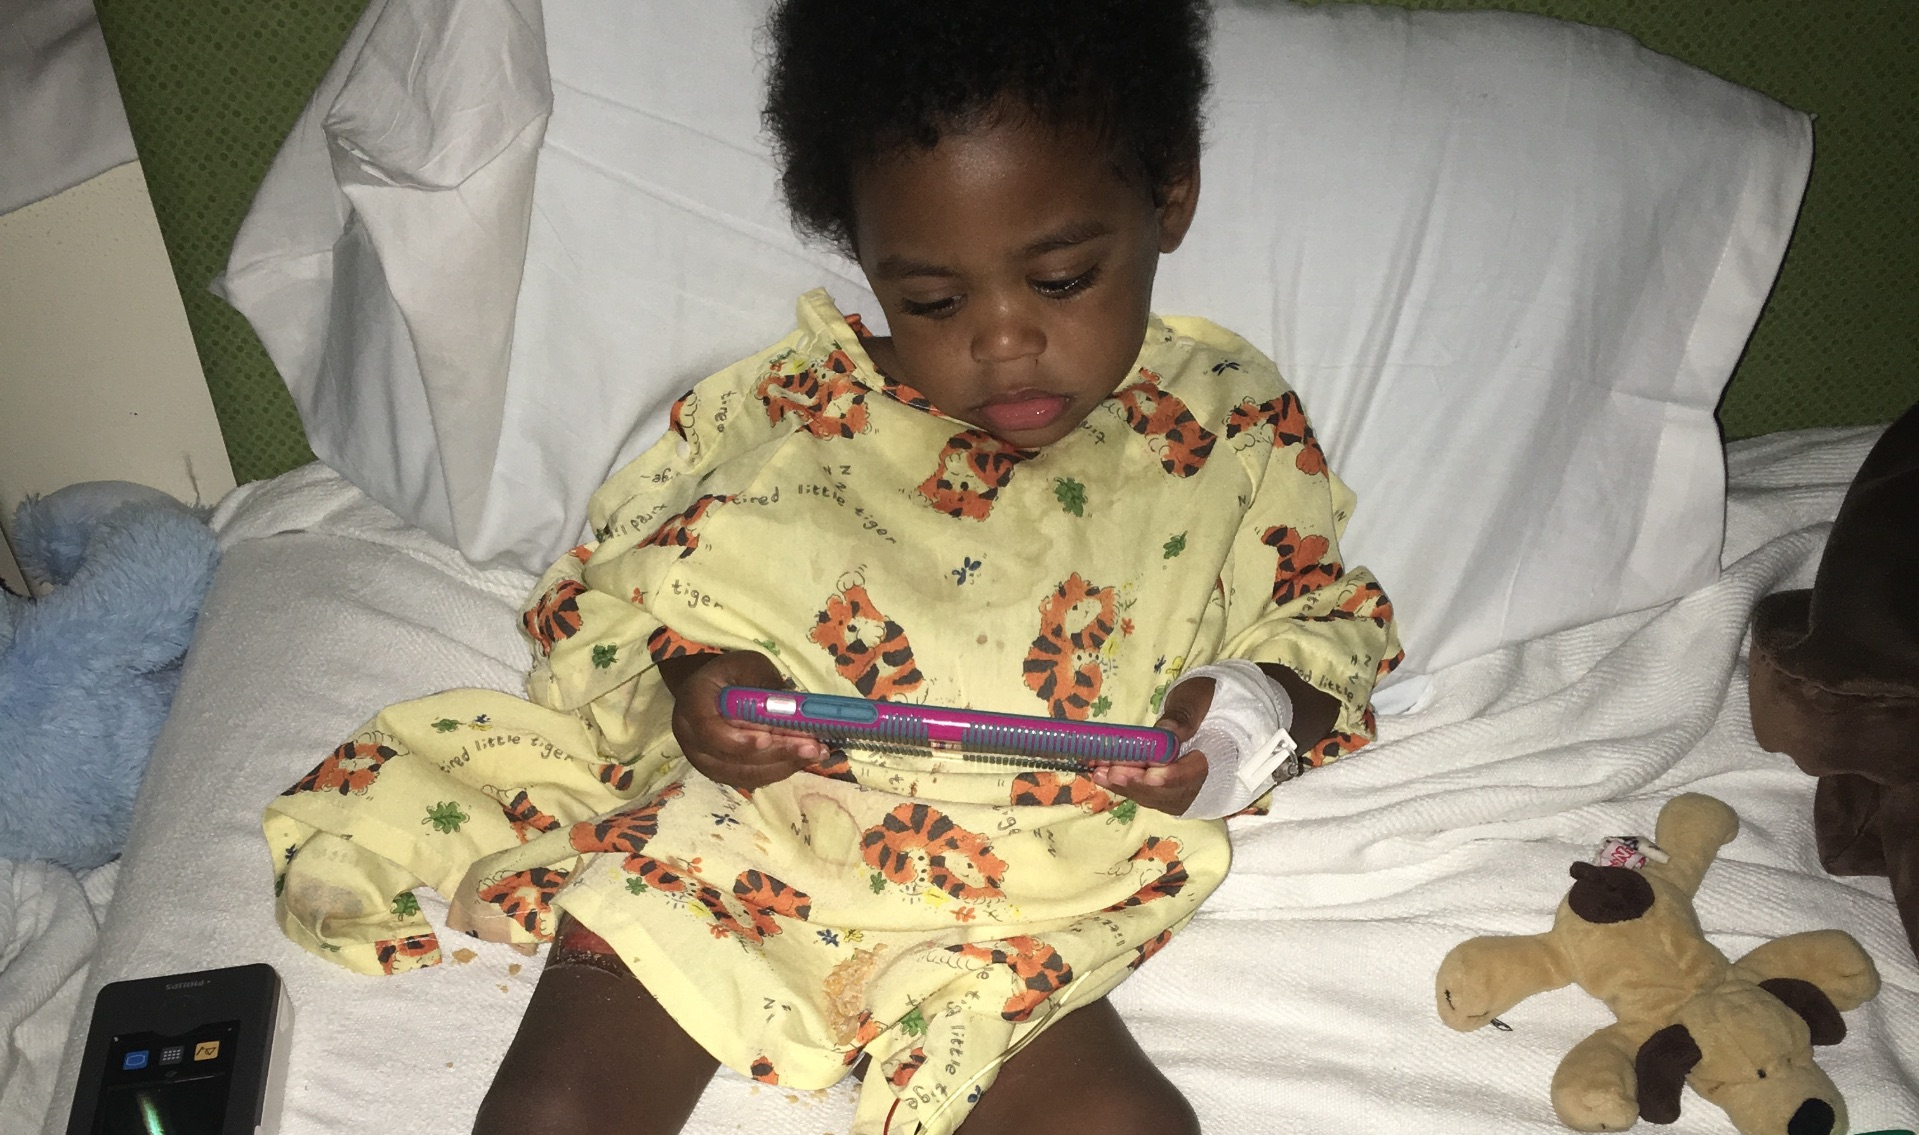 Jackson sits on his hospital bed, surrounded by his toys as he watches something on a phone. He is wearing a hospital gown with tigers on it.